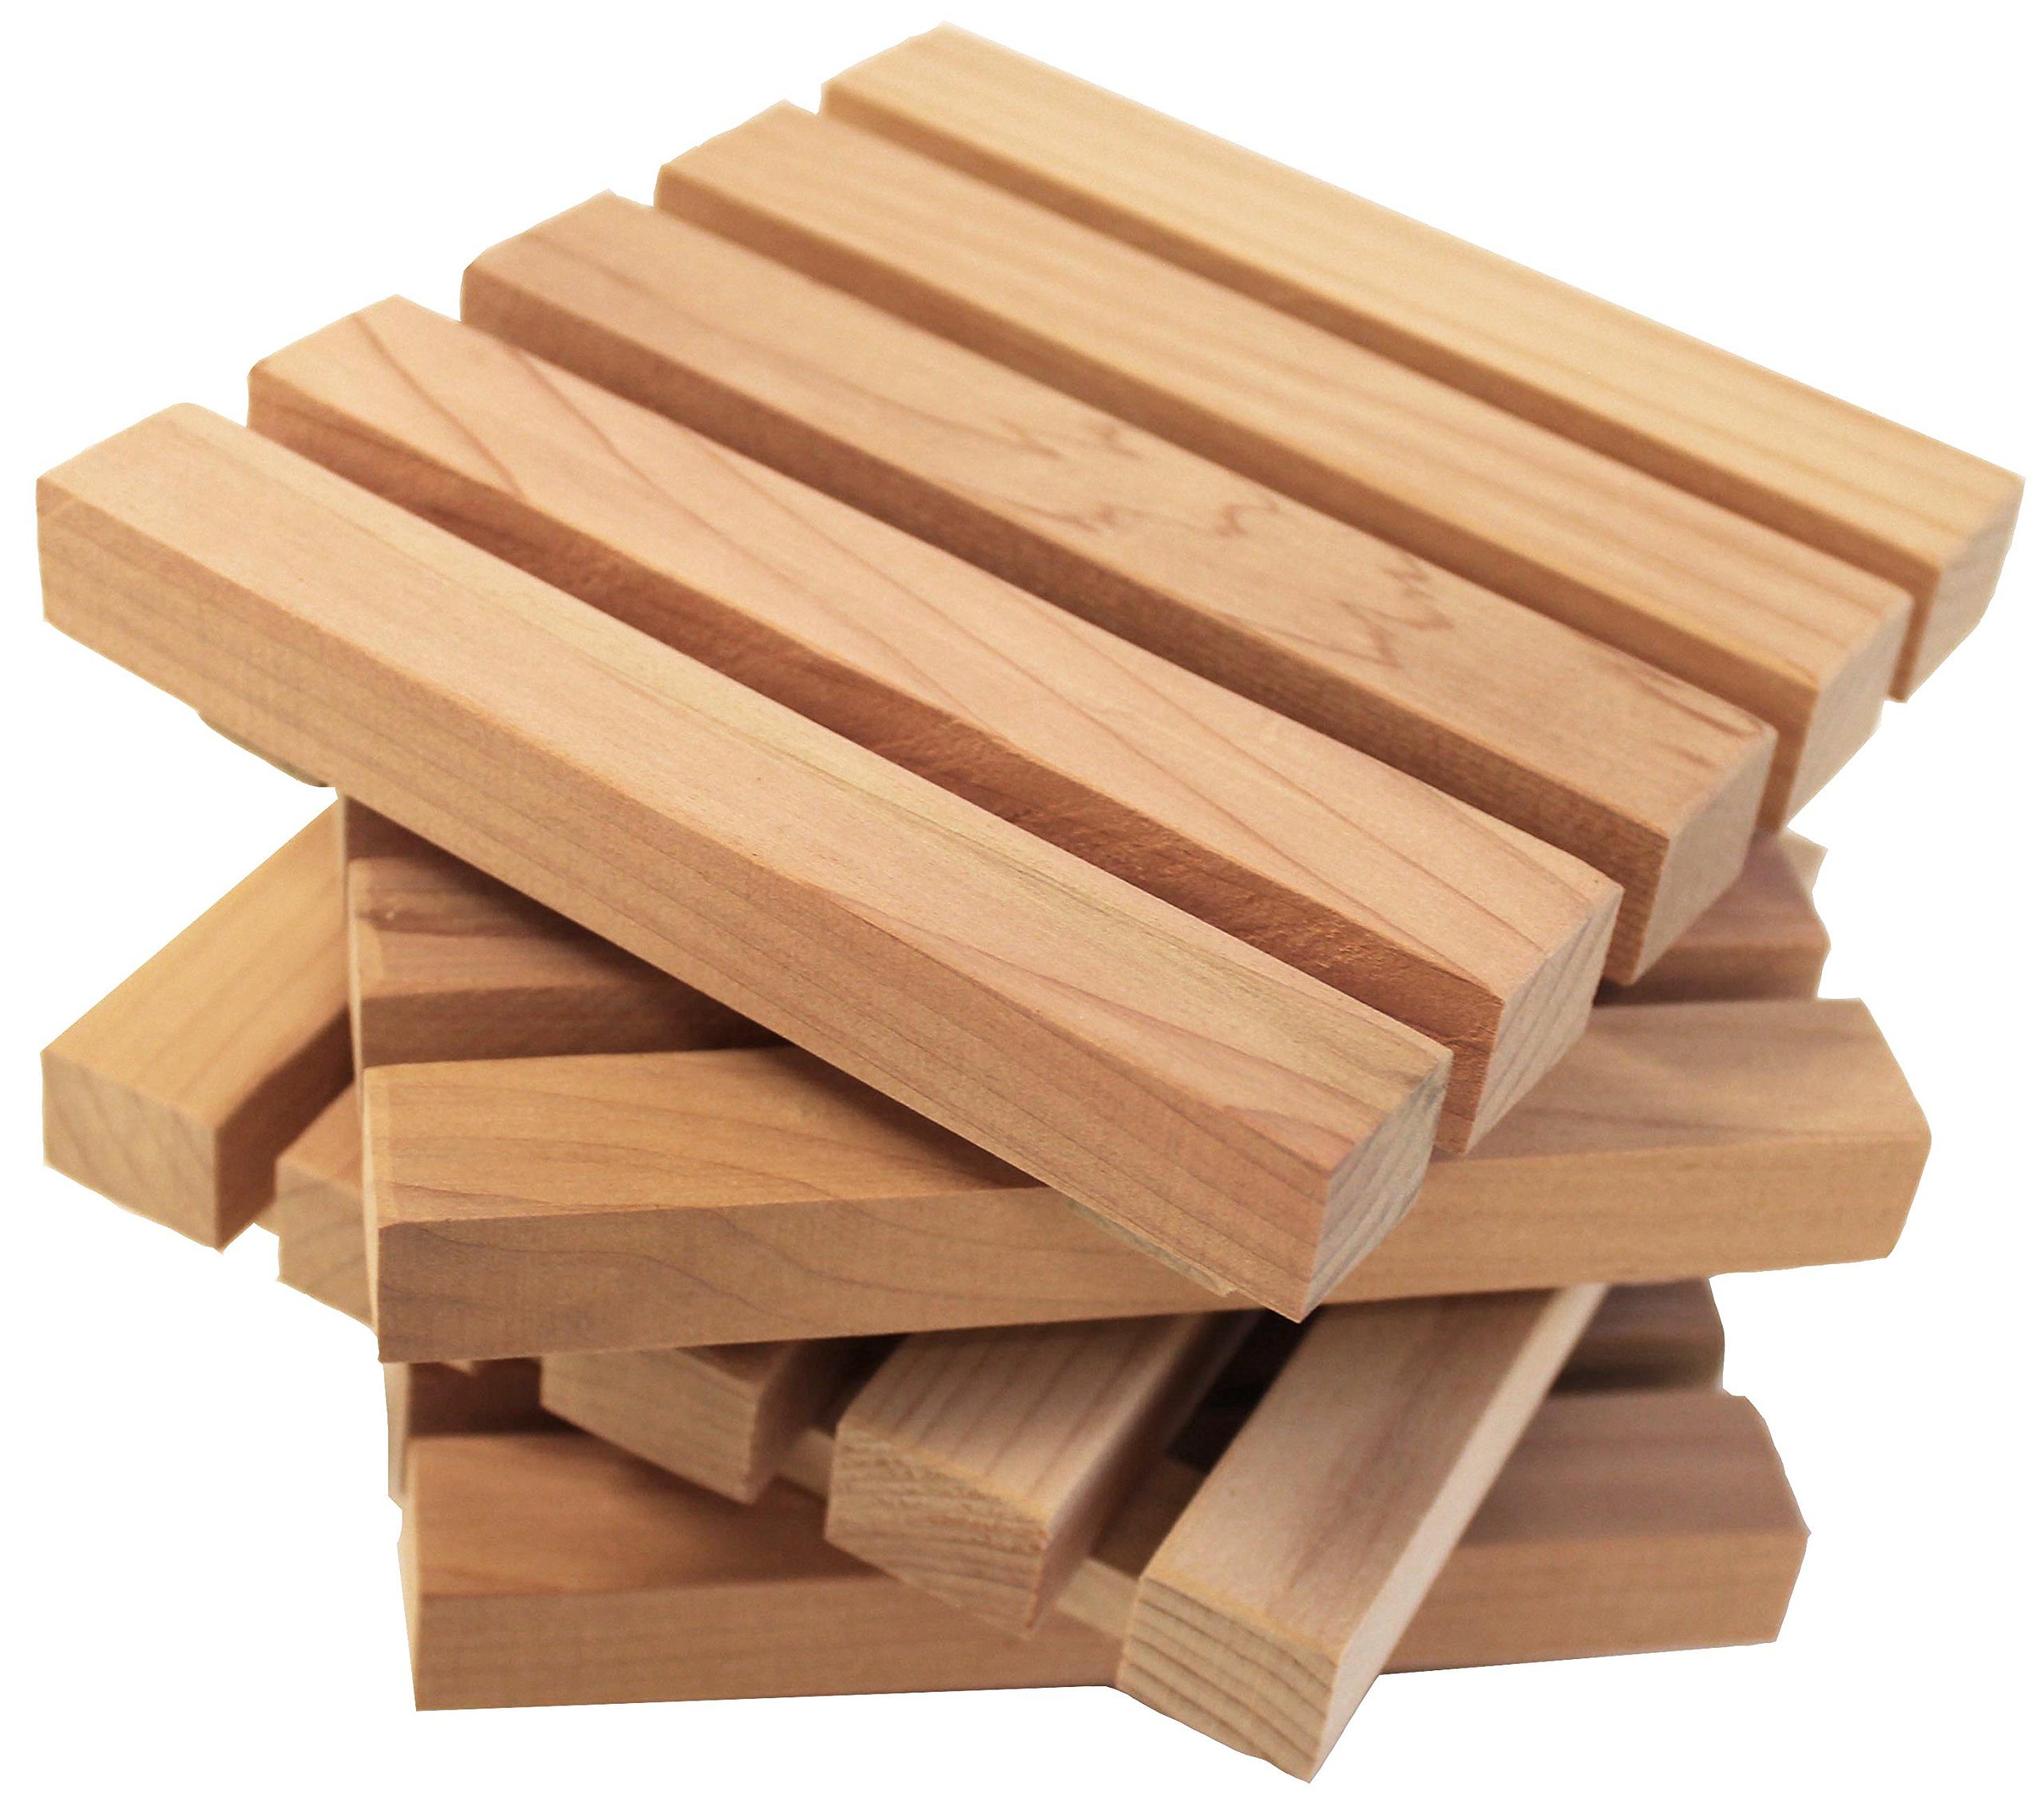 """Wood Block Crafts - Natural Cedar Pallet Wood Coaster Set - Rustic Coasters for Drinks - Protects Furniture From Wet Glass Bottle Stains - Cedar Wood Cute Pallet Design - Large 5"""" Square - Set Of 4"""